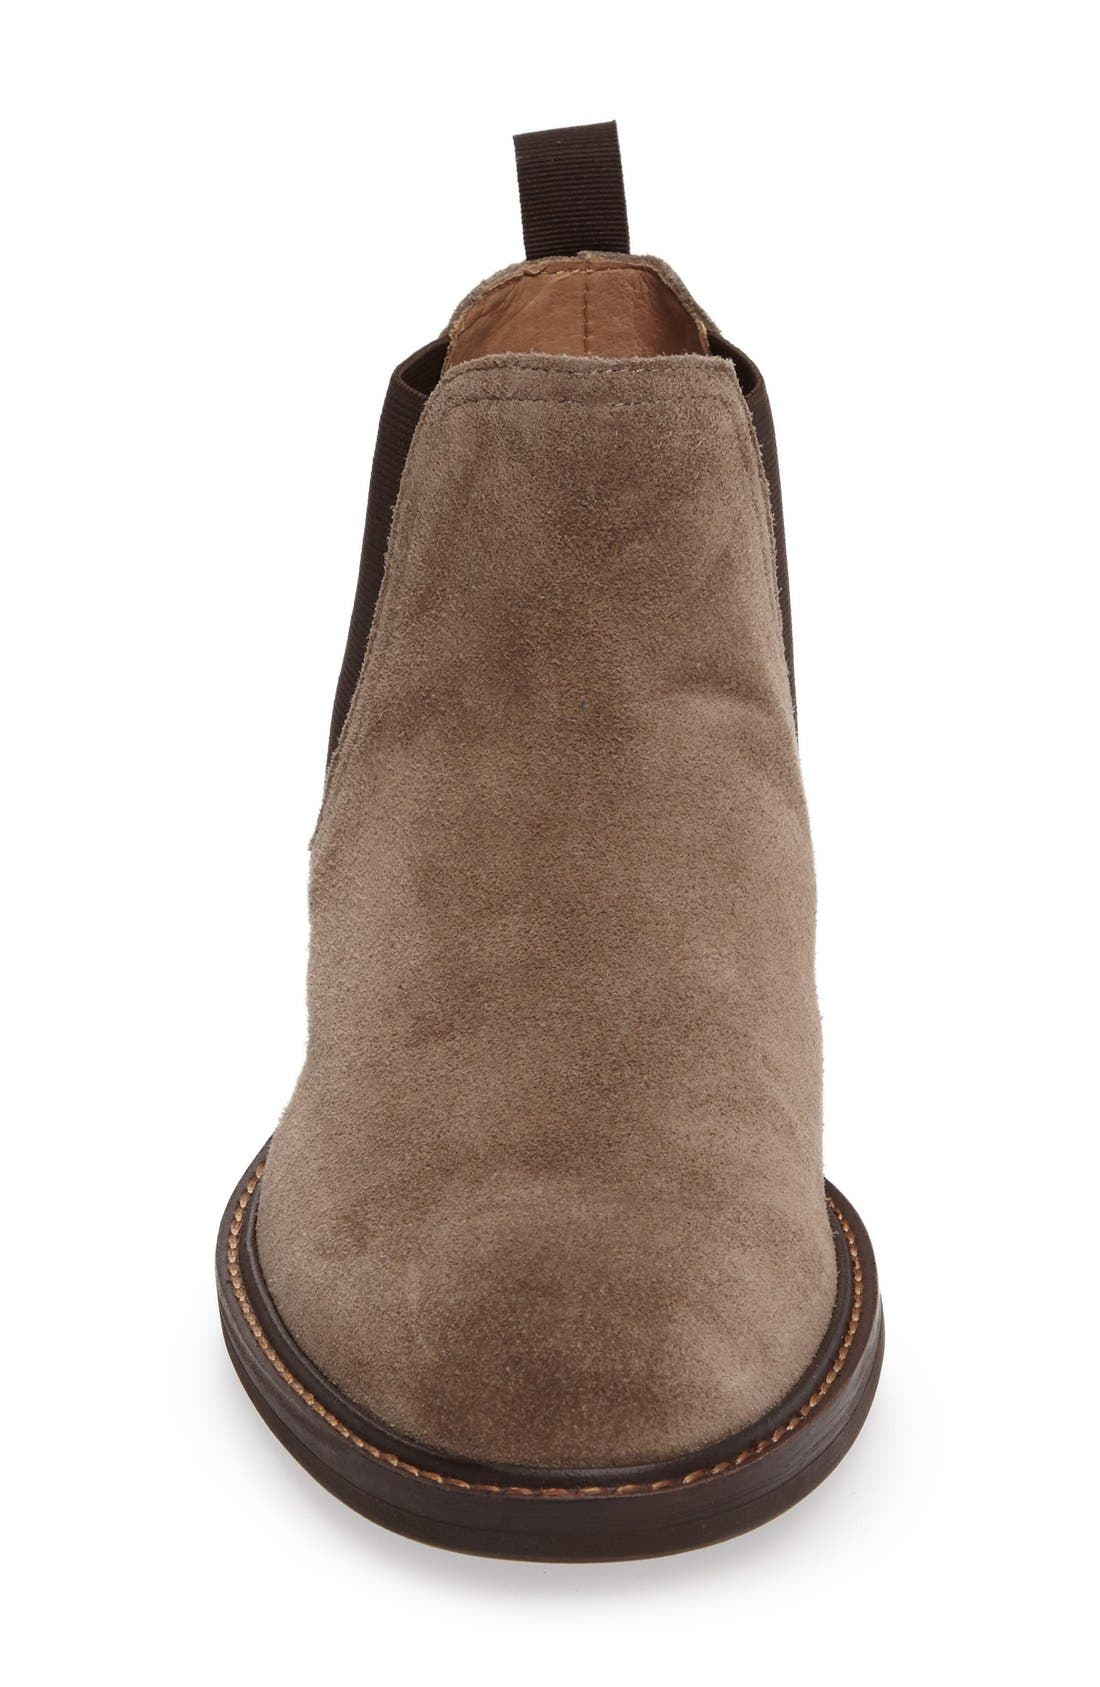 Alternate Image 3  - 1901 Horton Chelsea Boot (Men)